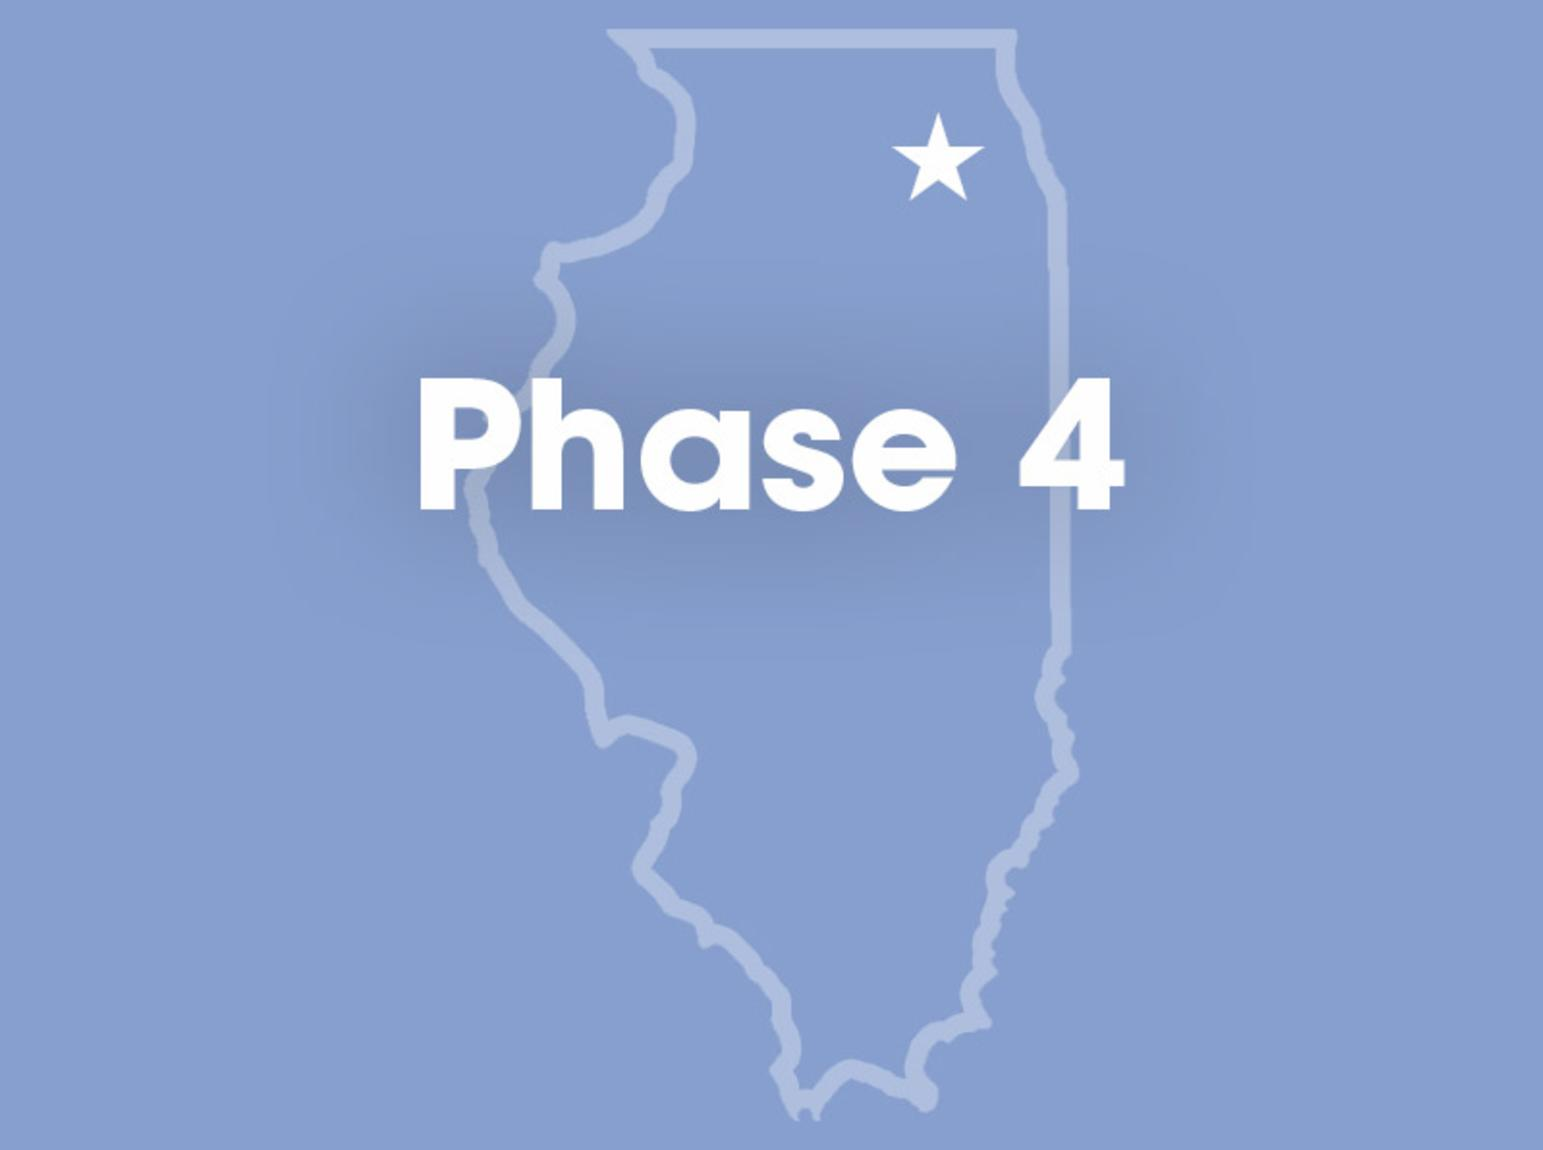 Phase 4 graphic for COVID-19